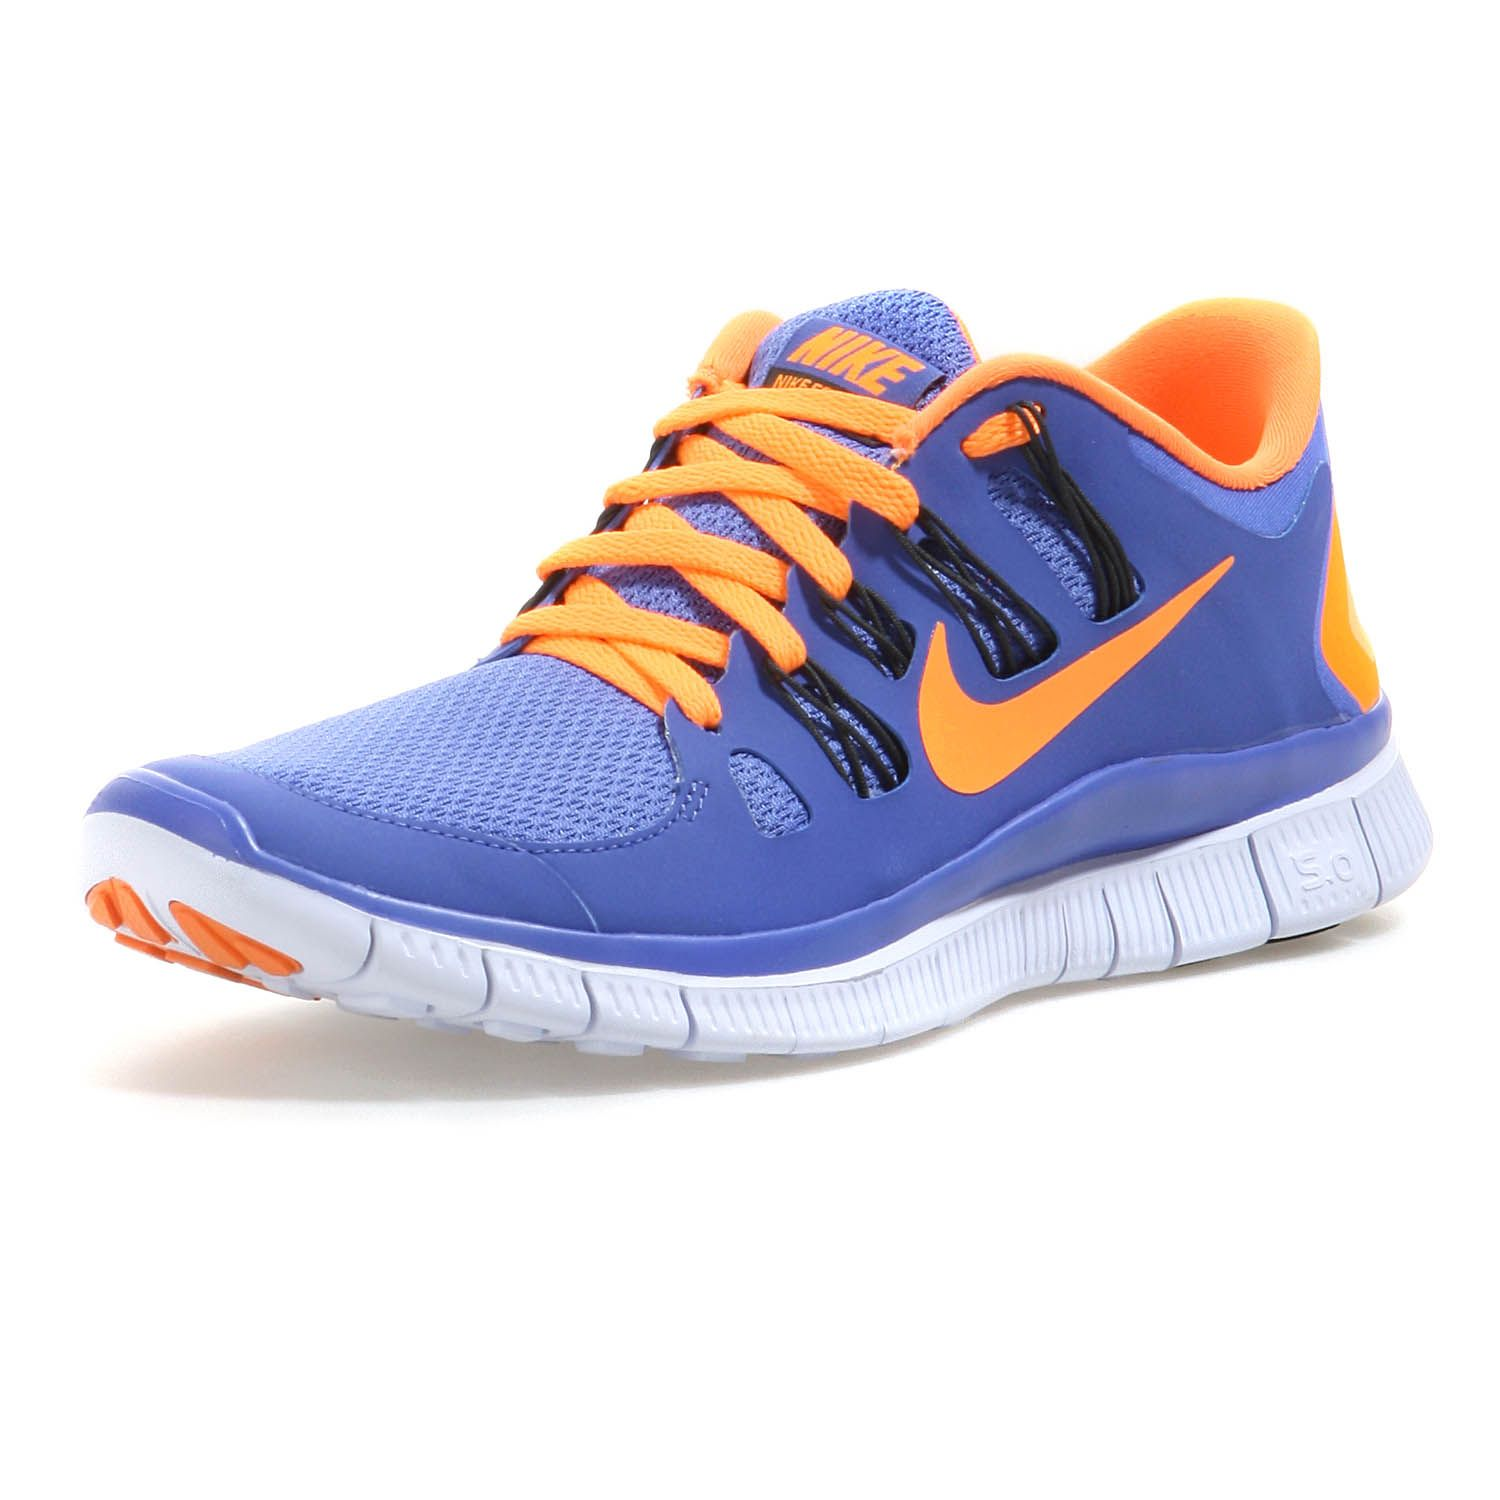 competitive price 12c85 54aec ... discount code for nike free 5.0 natural running schuhe damen blau  orange http 2fe7c 5602e